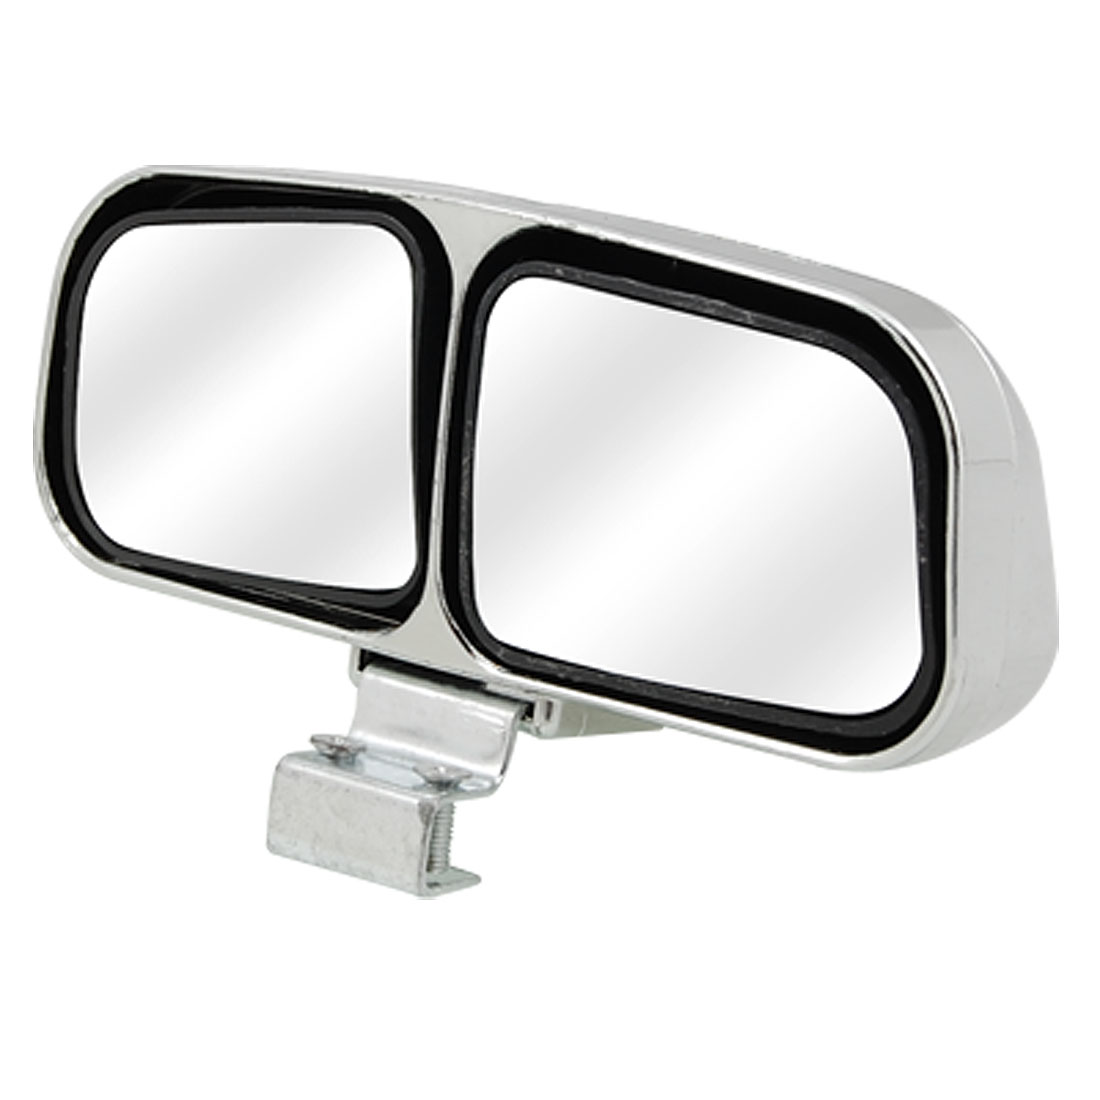 Silver Tone Plated 2 Convex Mirrors Car Auxiliary Rearview Blind Spot Mirror